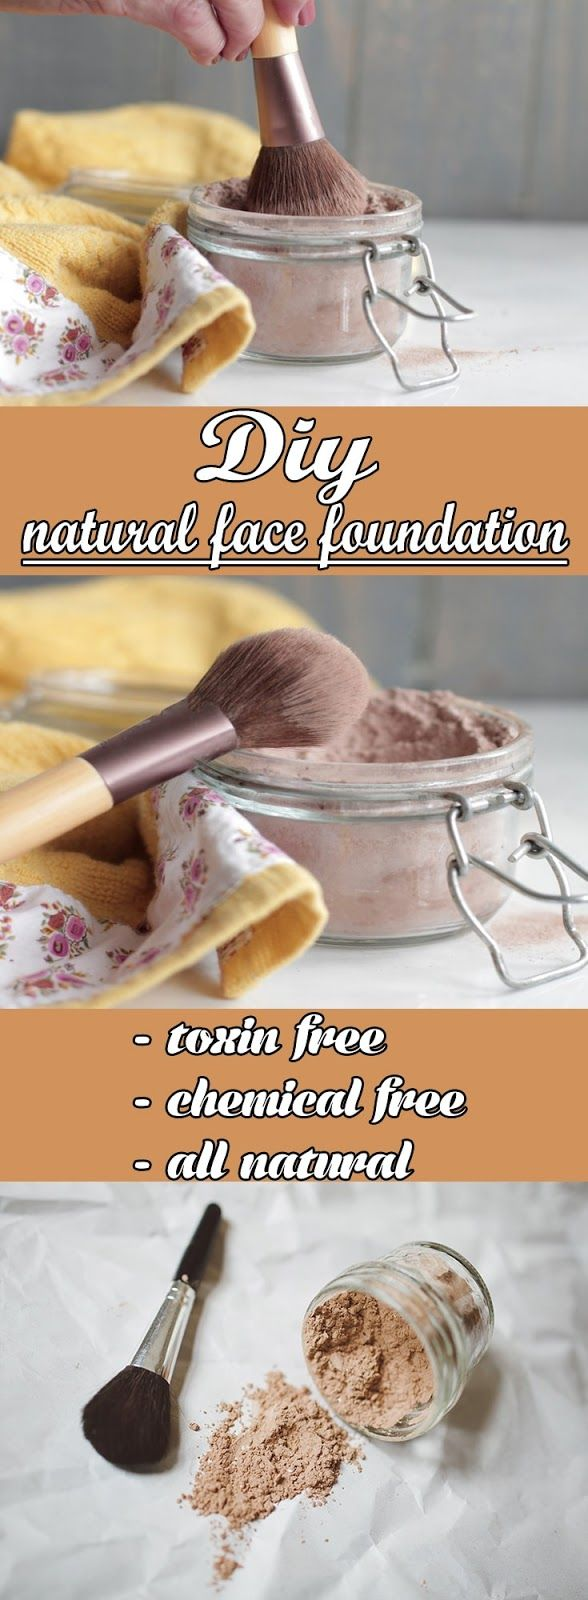 Natural Face Foundation All Natural And Chemical Free. Make one for yourself now.  #face #foundation #diy